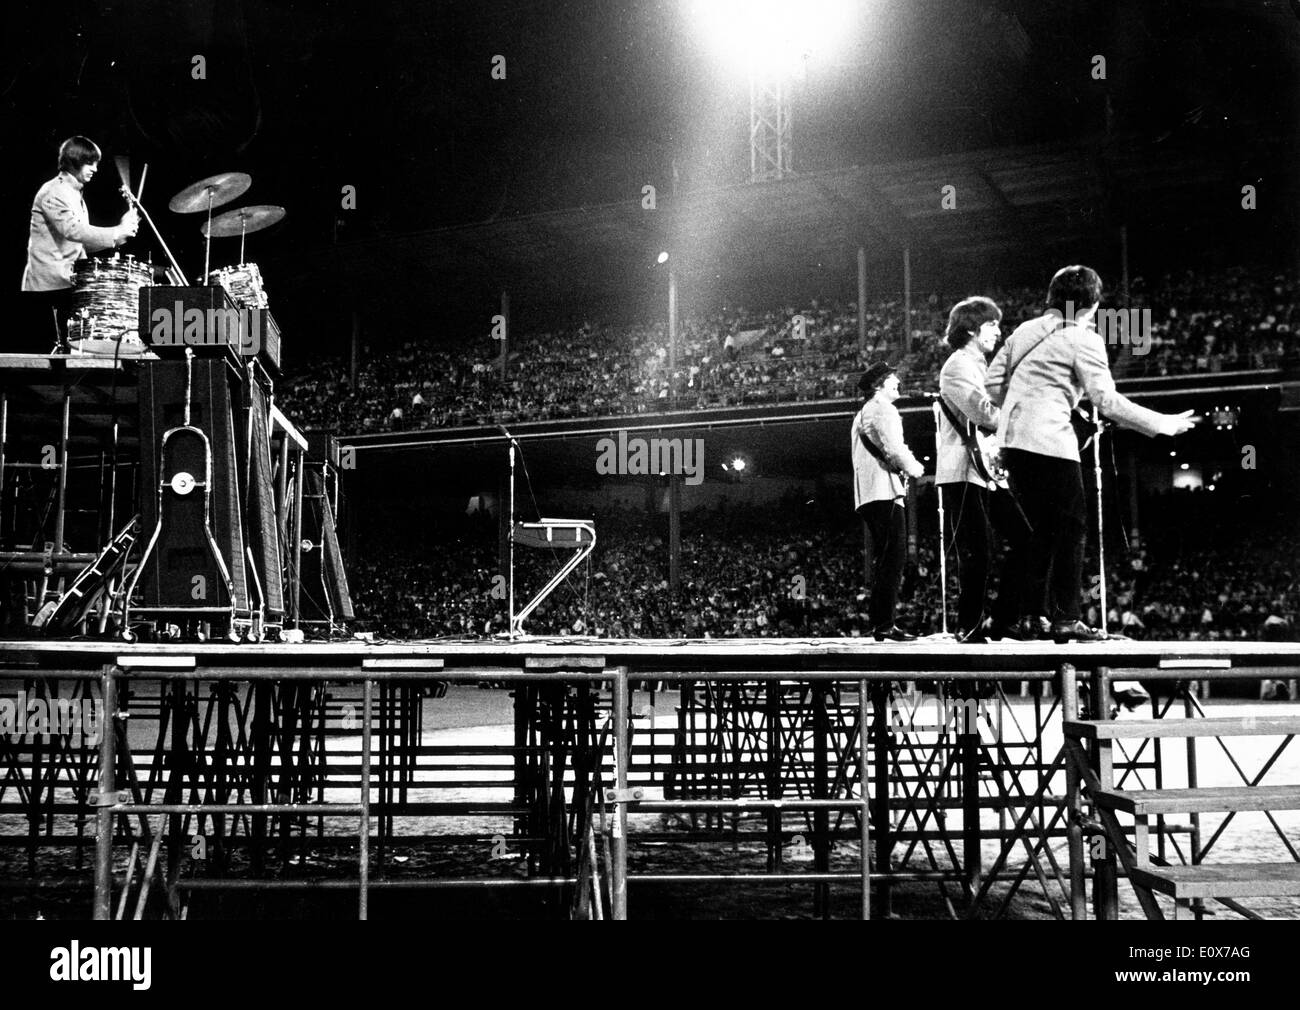 The Beatles perform at Shea Stadium Stock Photo